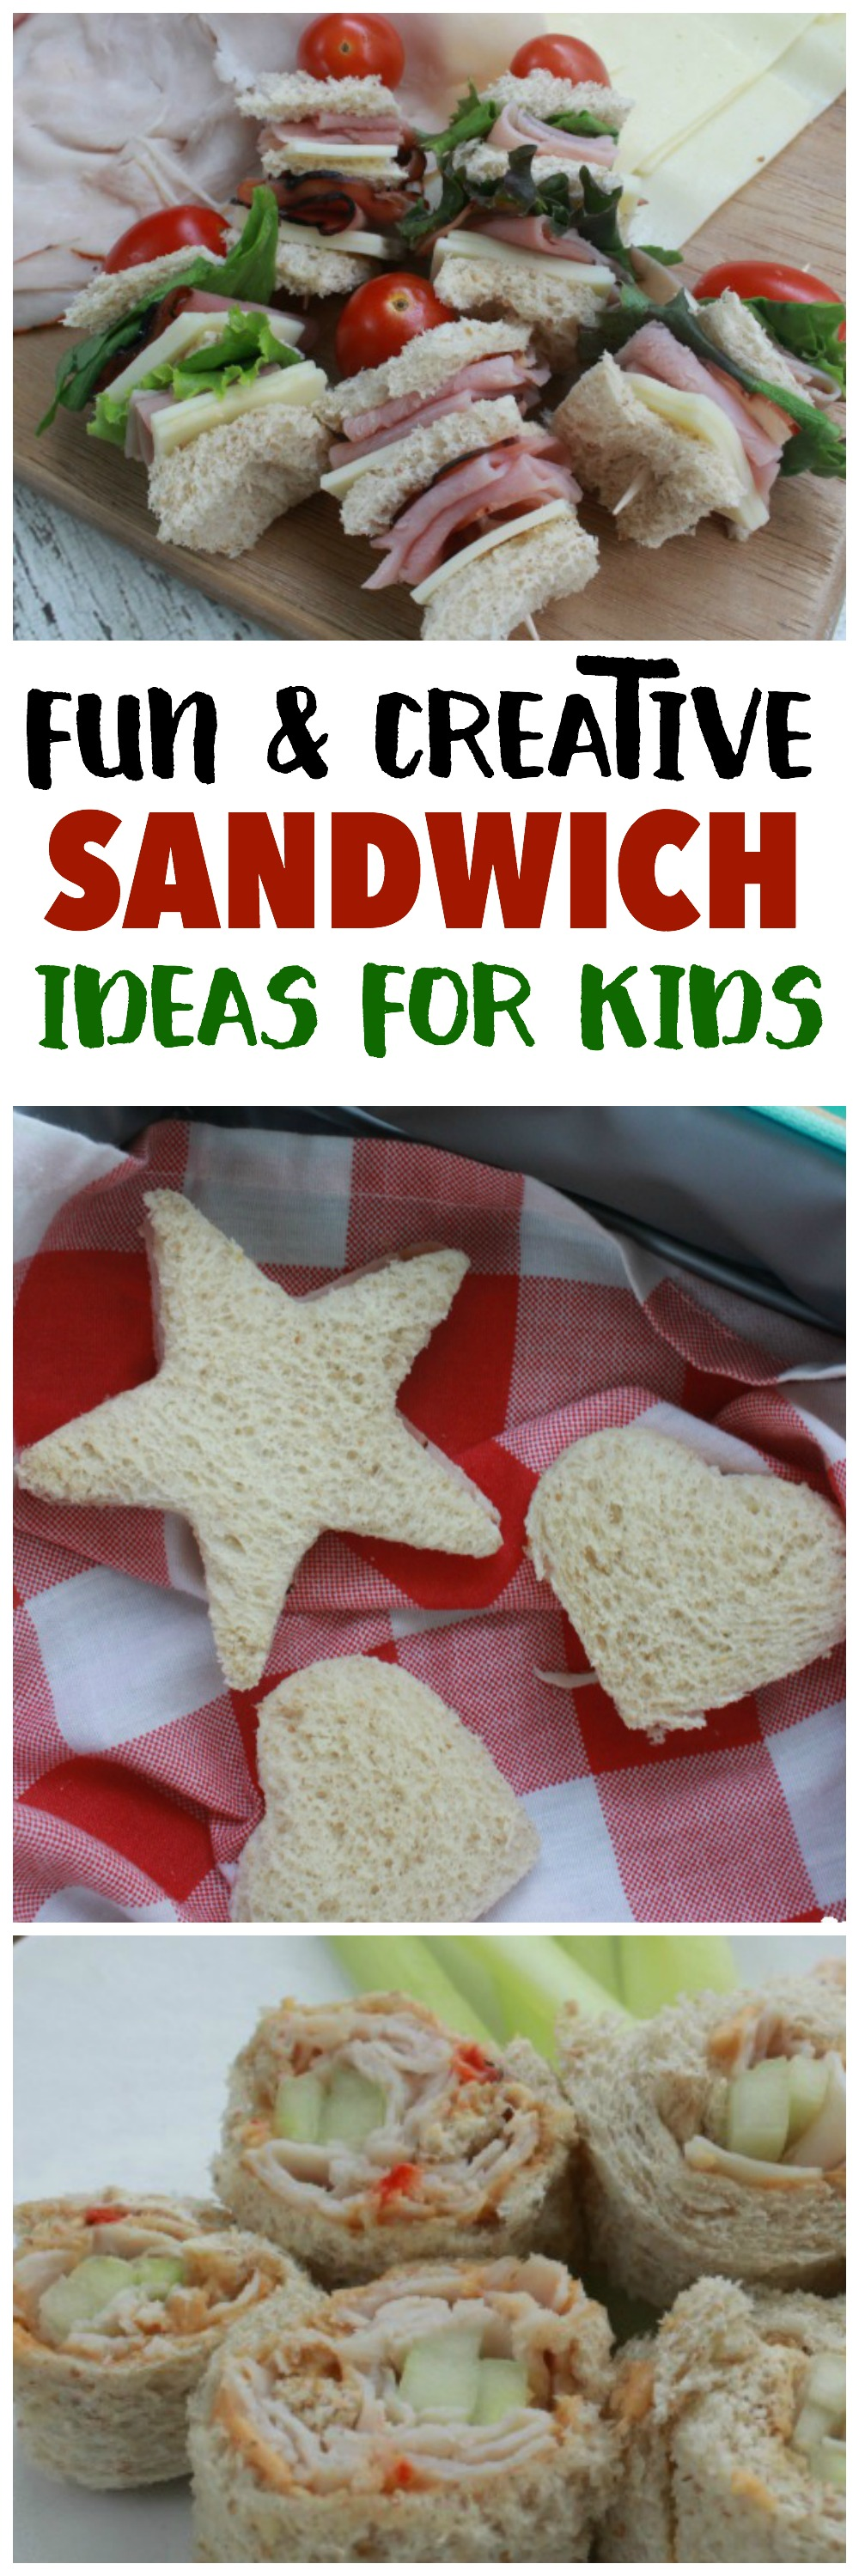 sandwich ideas for kids